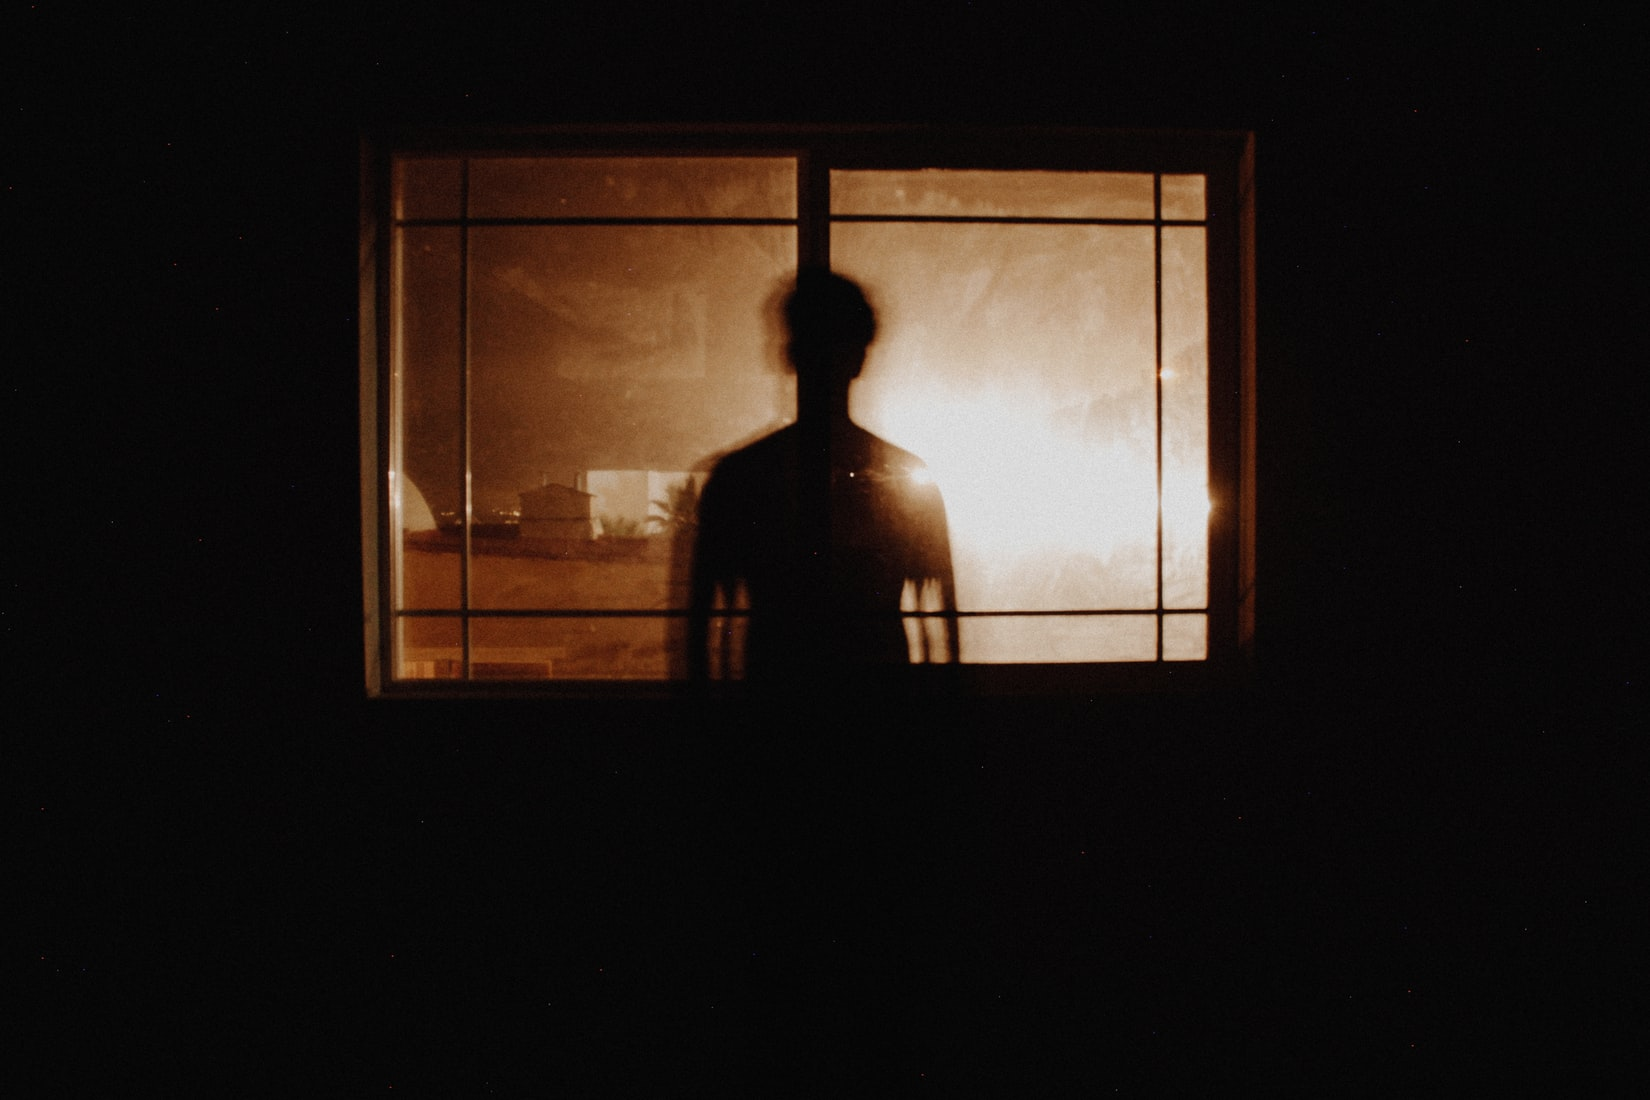 Silhouette photography of man in front of window in dark room